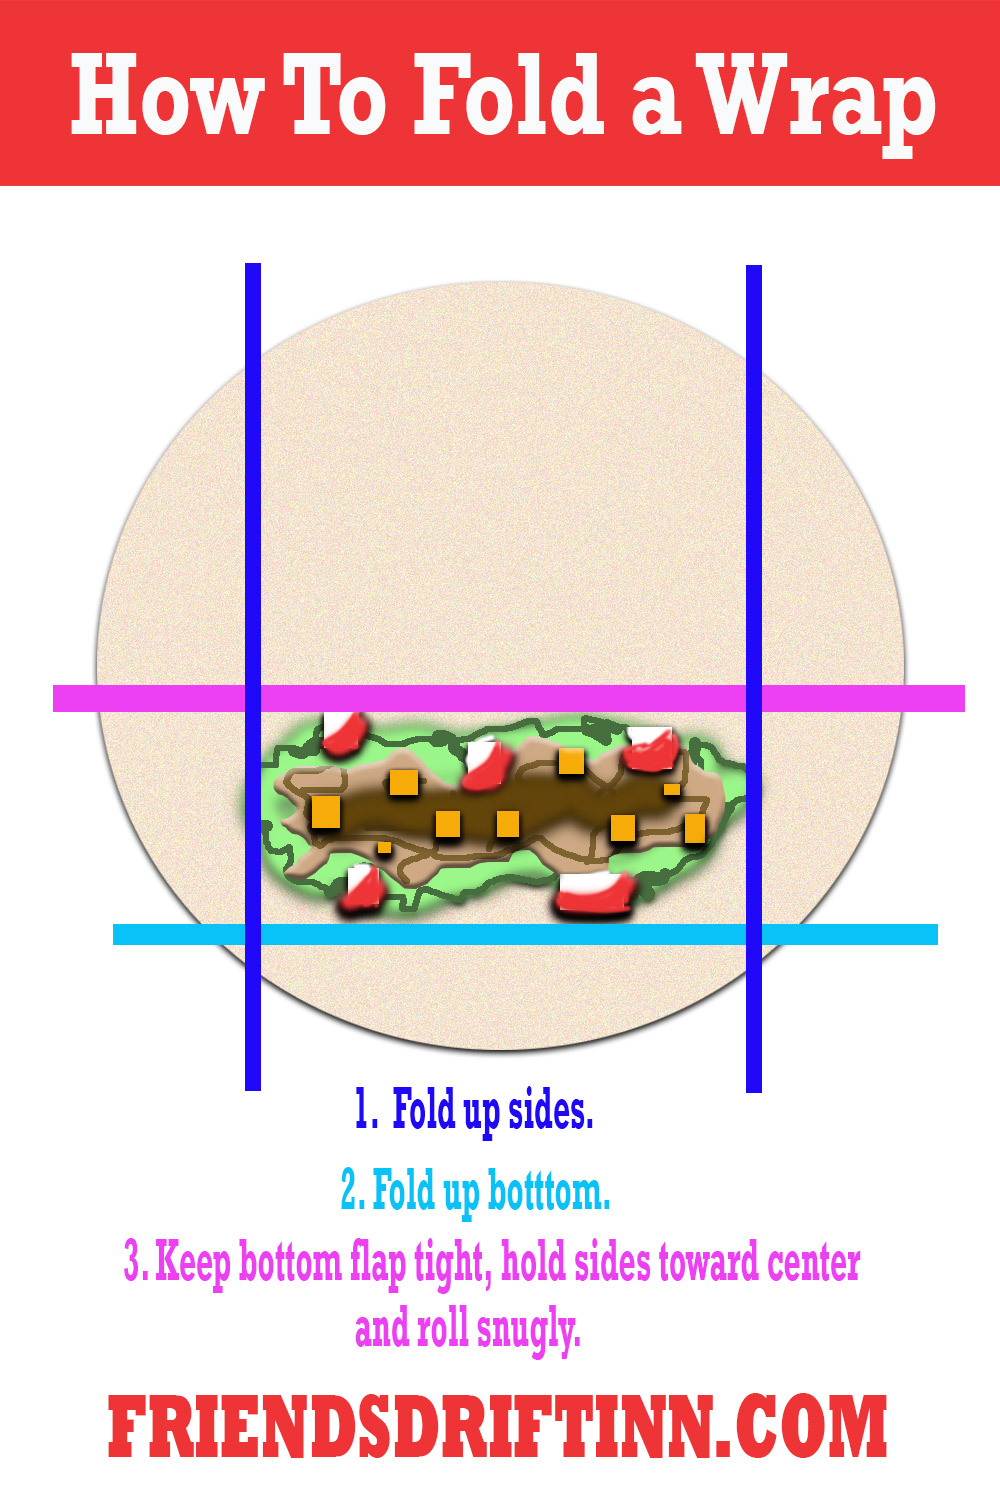 Infographic showing grid over tortilla wrap to illustrate how to fold wrap.